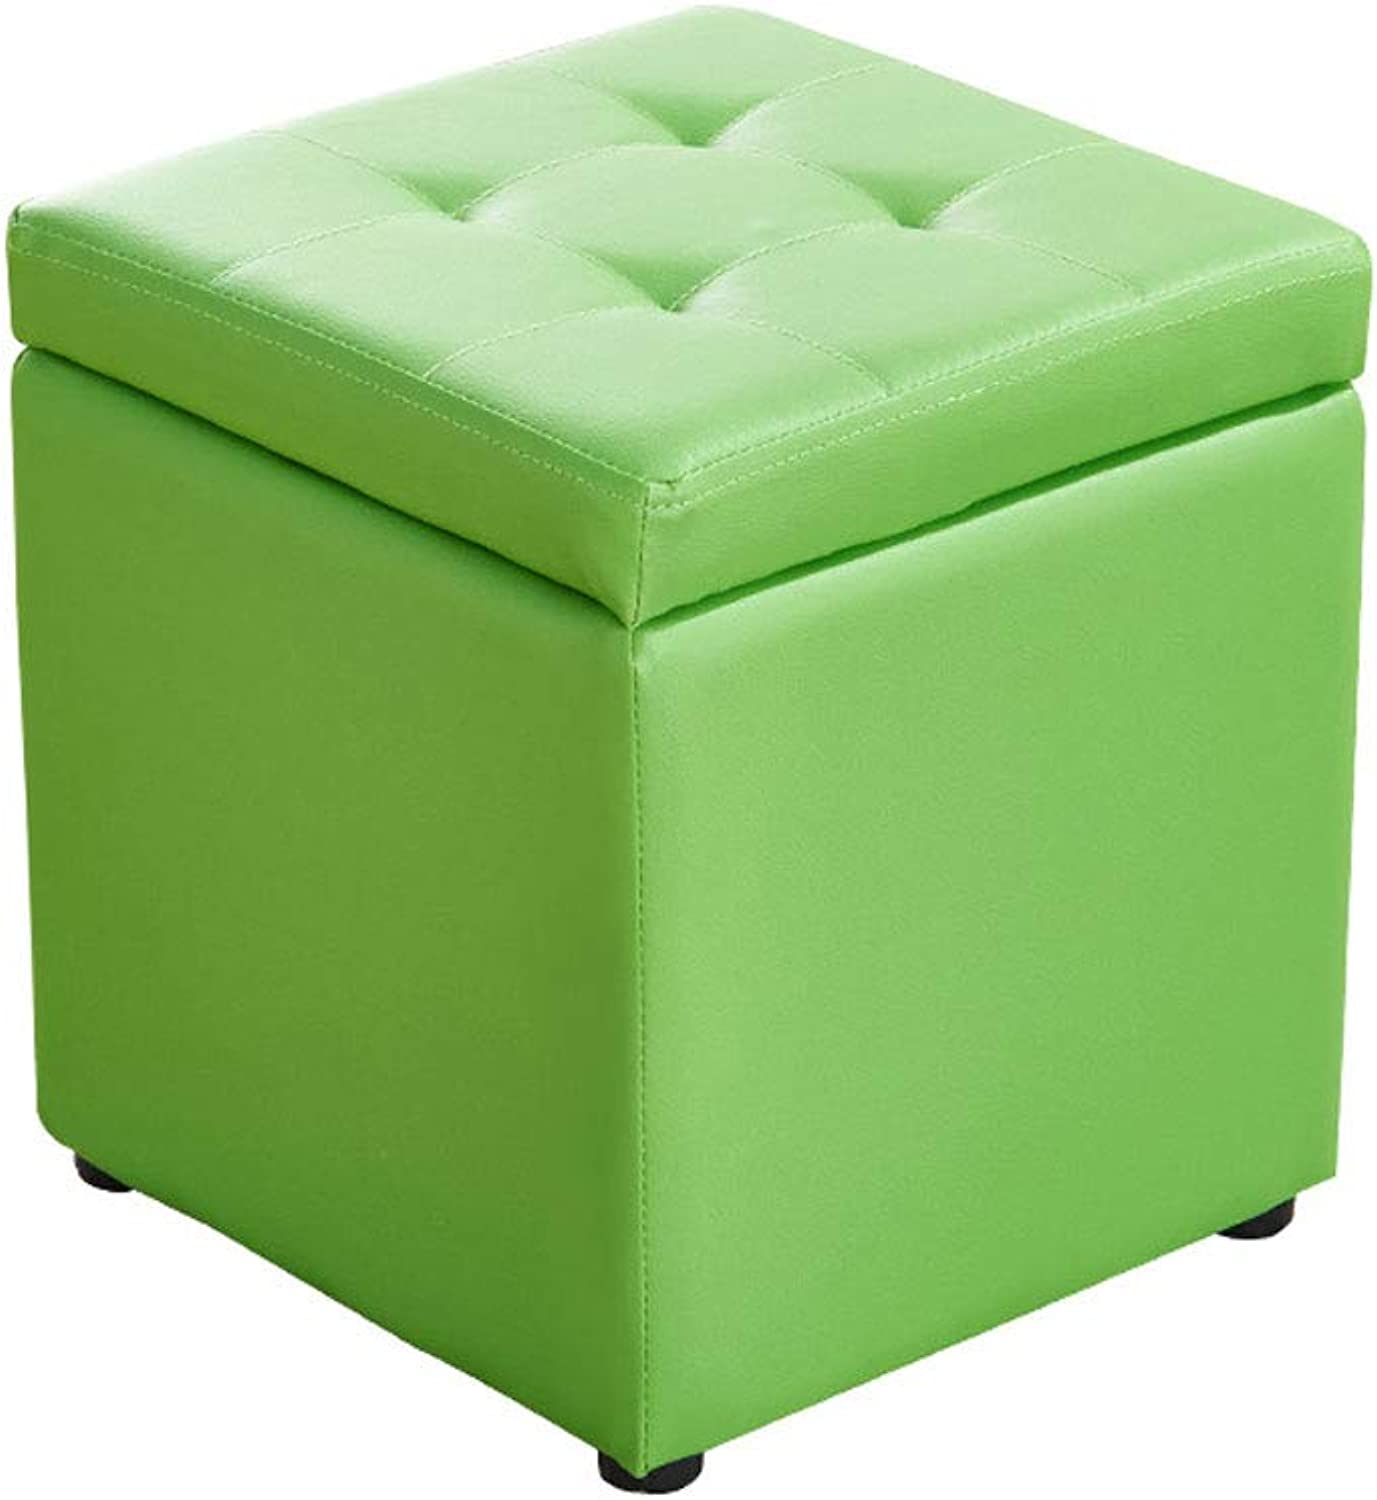 HY Storage Stool Multi-Function Storage Home Leather Square Living Room Sofa Small Bench (color   Green, Size   L30CMXW30CMXH35CM)